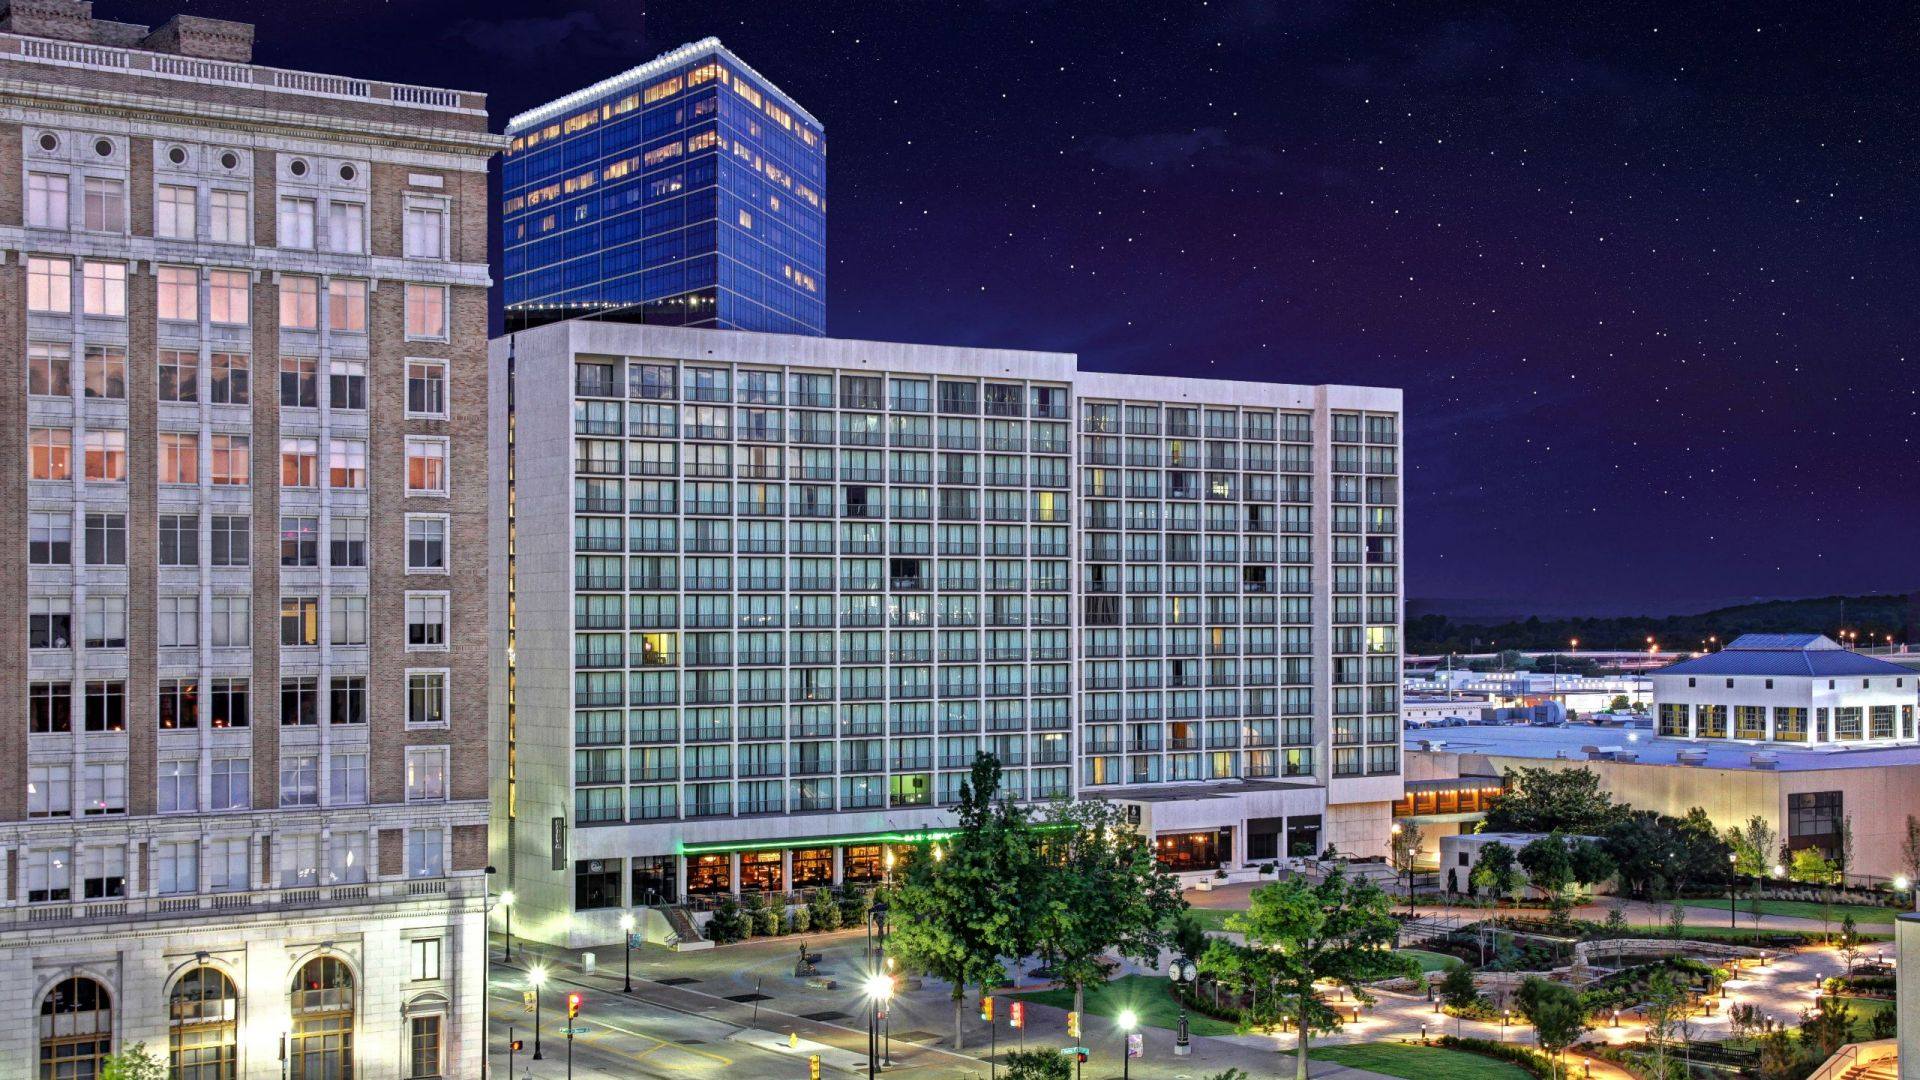 Hyatt Regency Tulsa Exterior at Night